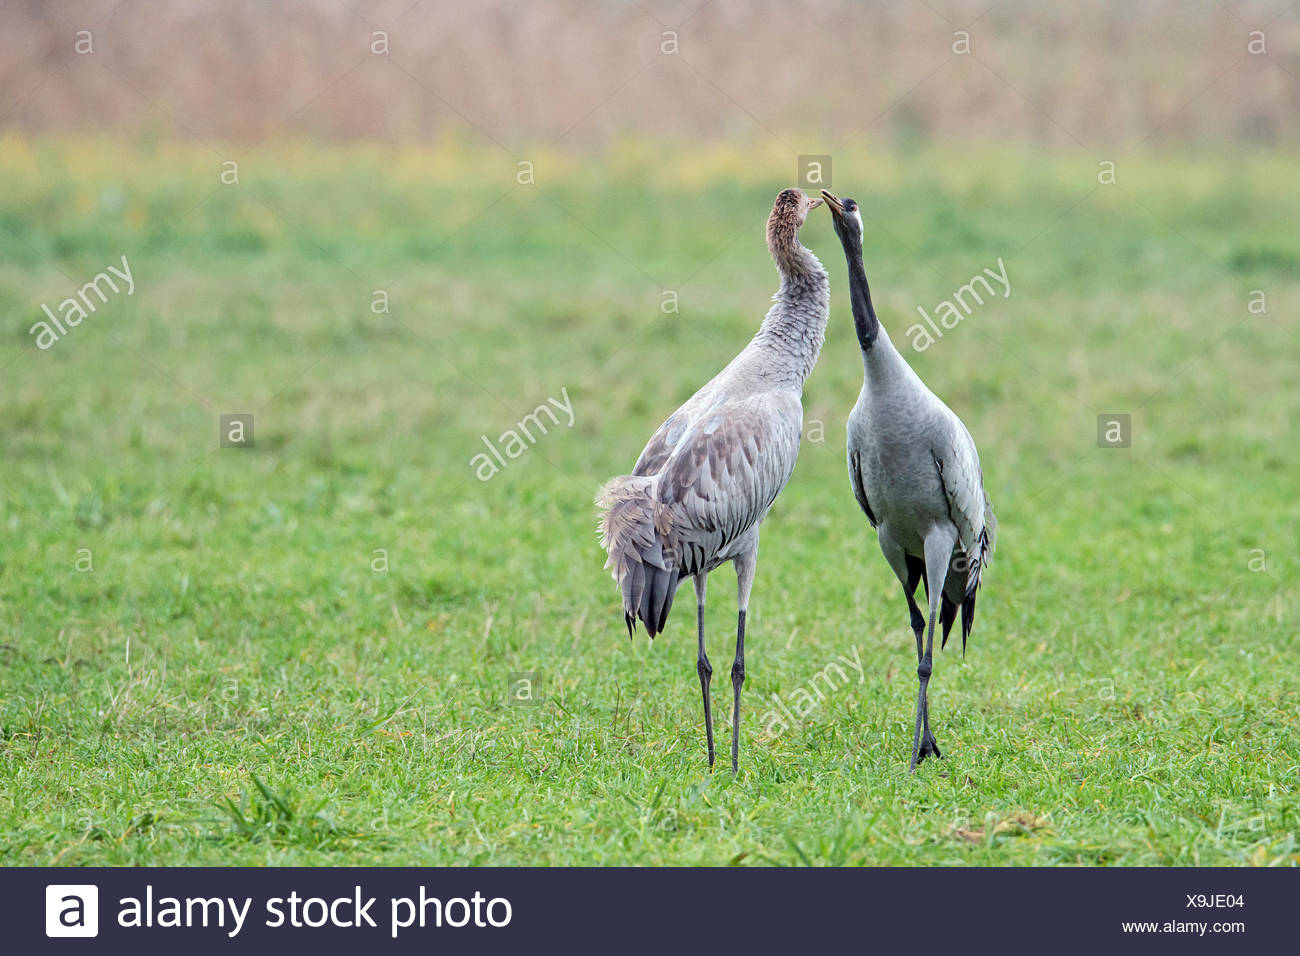 Crane couple on meadow billing - Stock Image